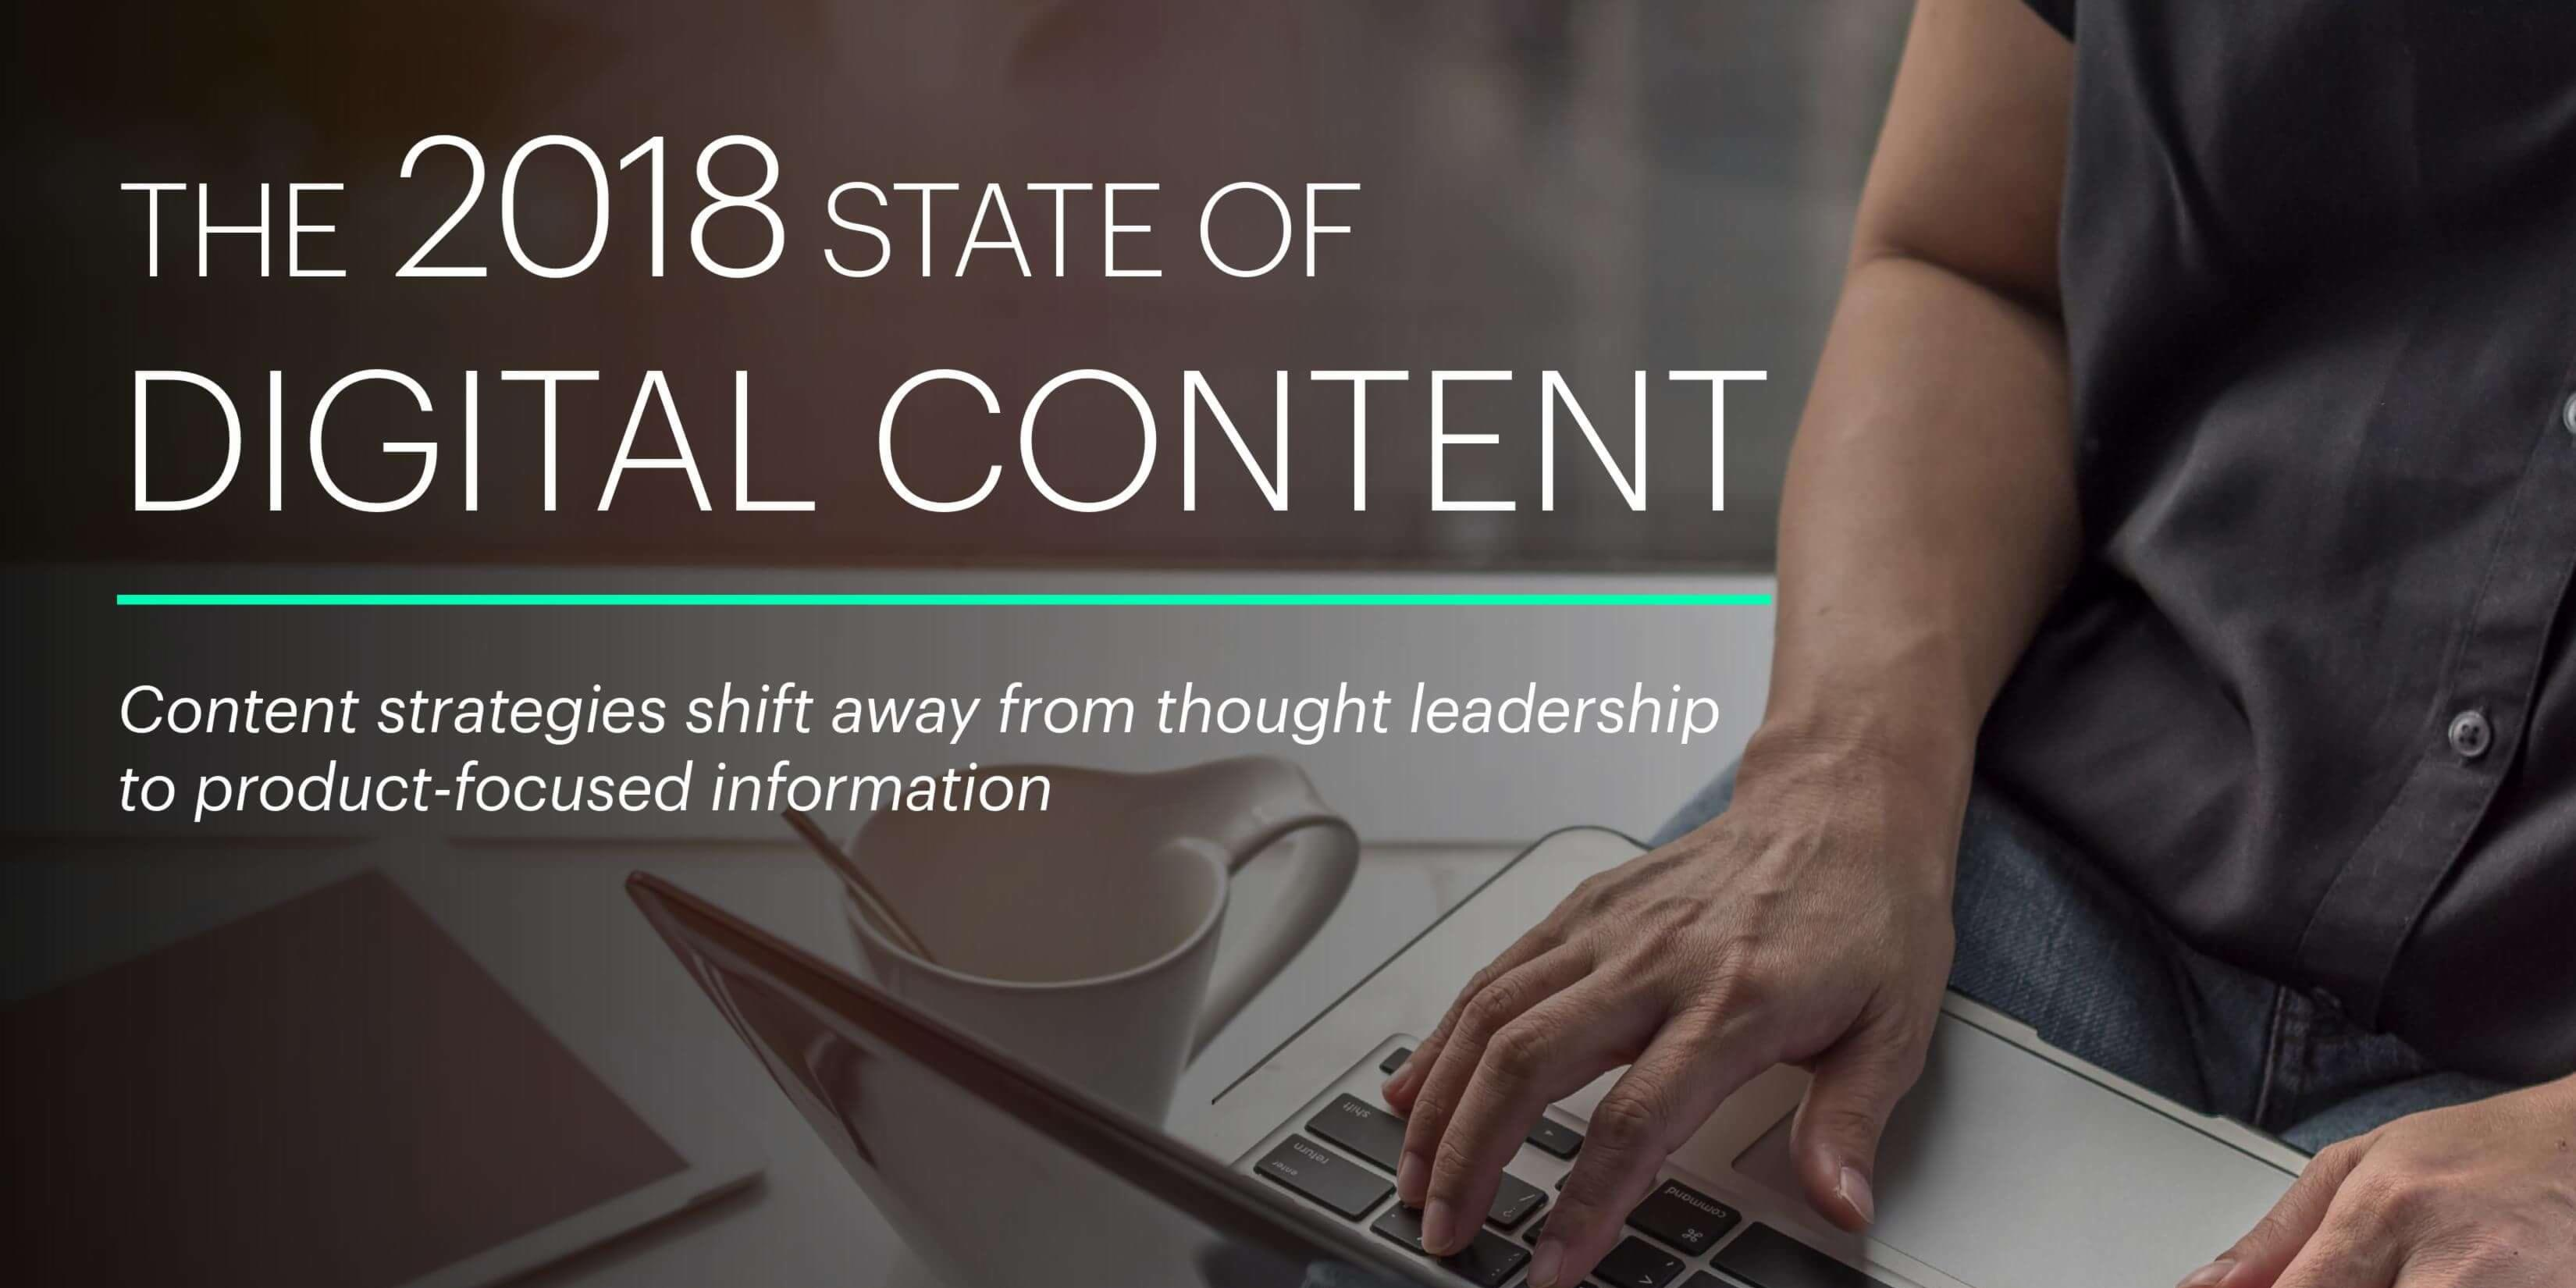 The 2018 State of Digital Content | Altimeter, a Prophet Company